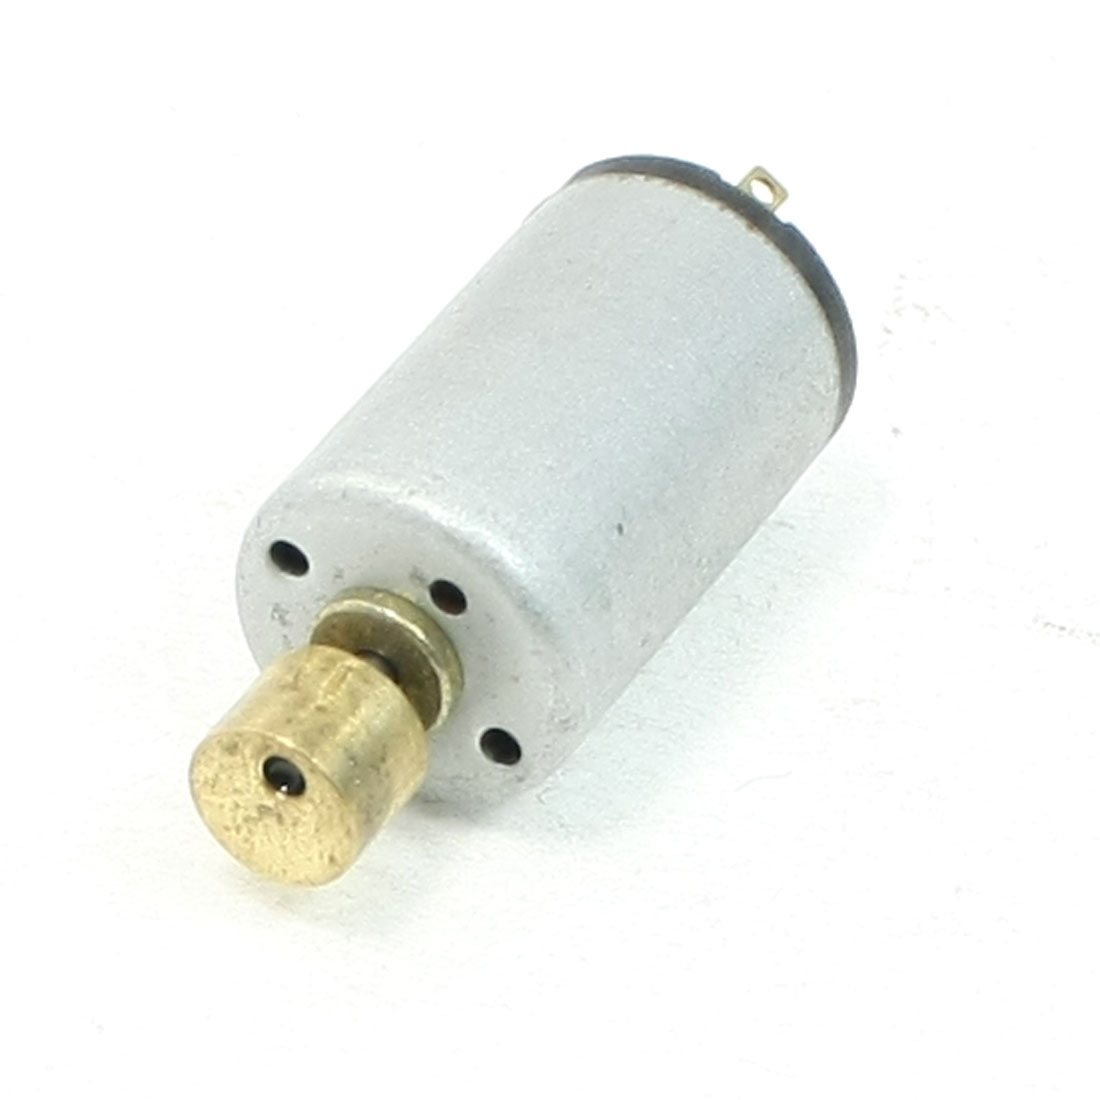 Micro-DC-Vibration-Motor-2-Pin-Terminals-3V-0-2A-8000RPM